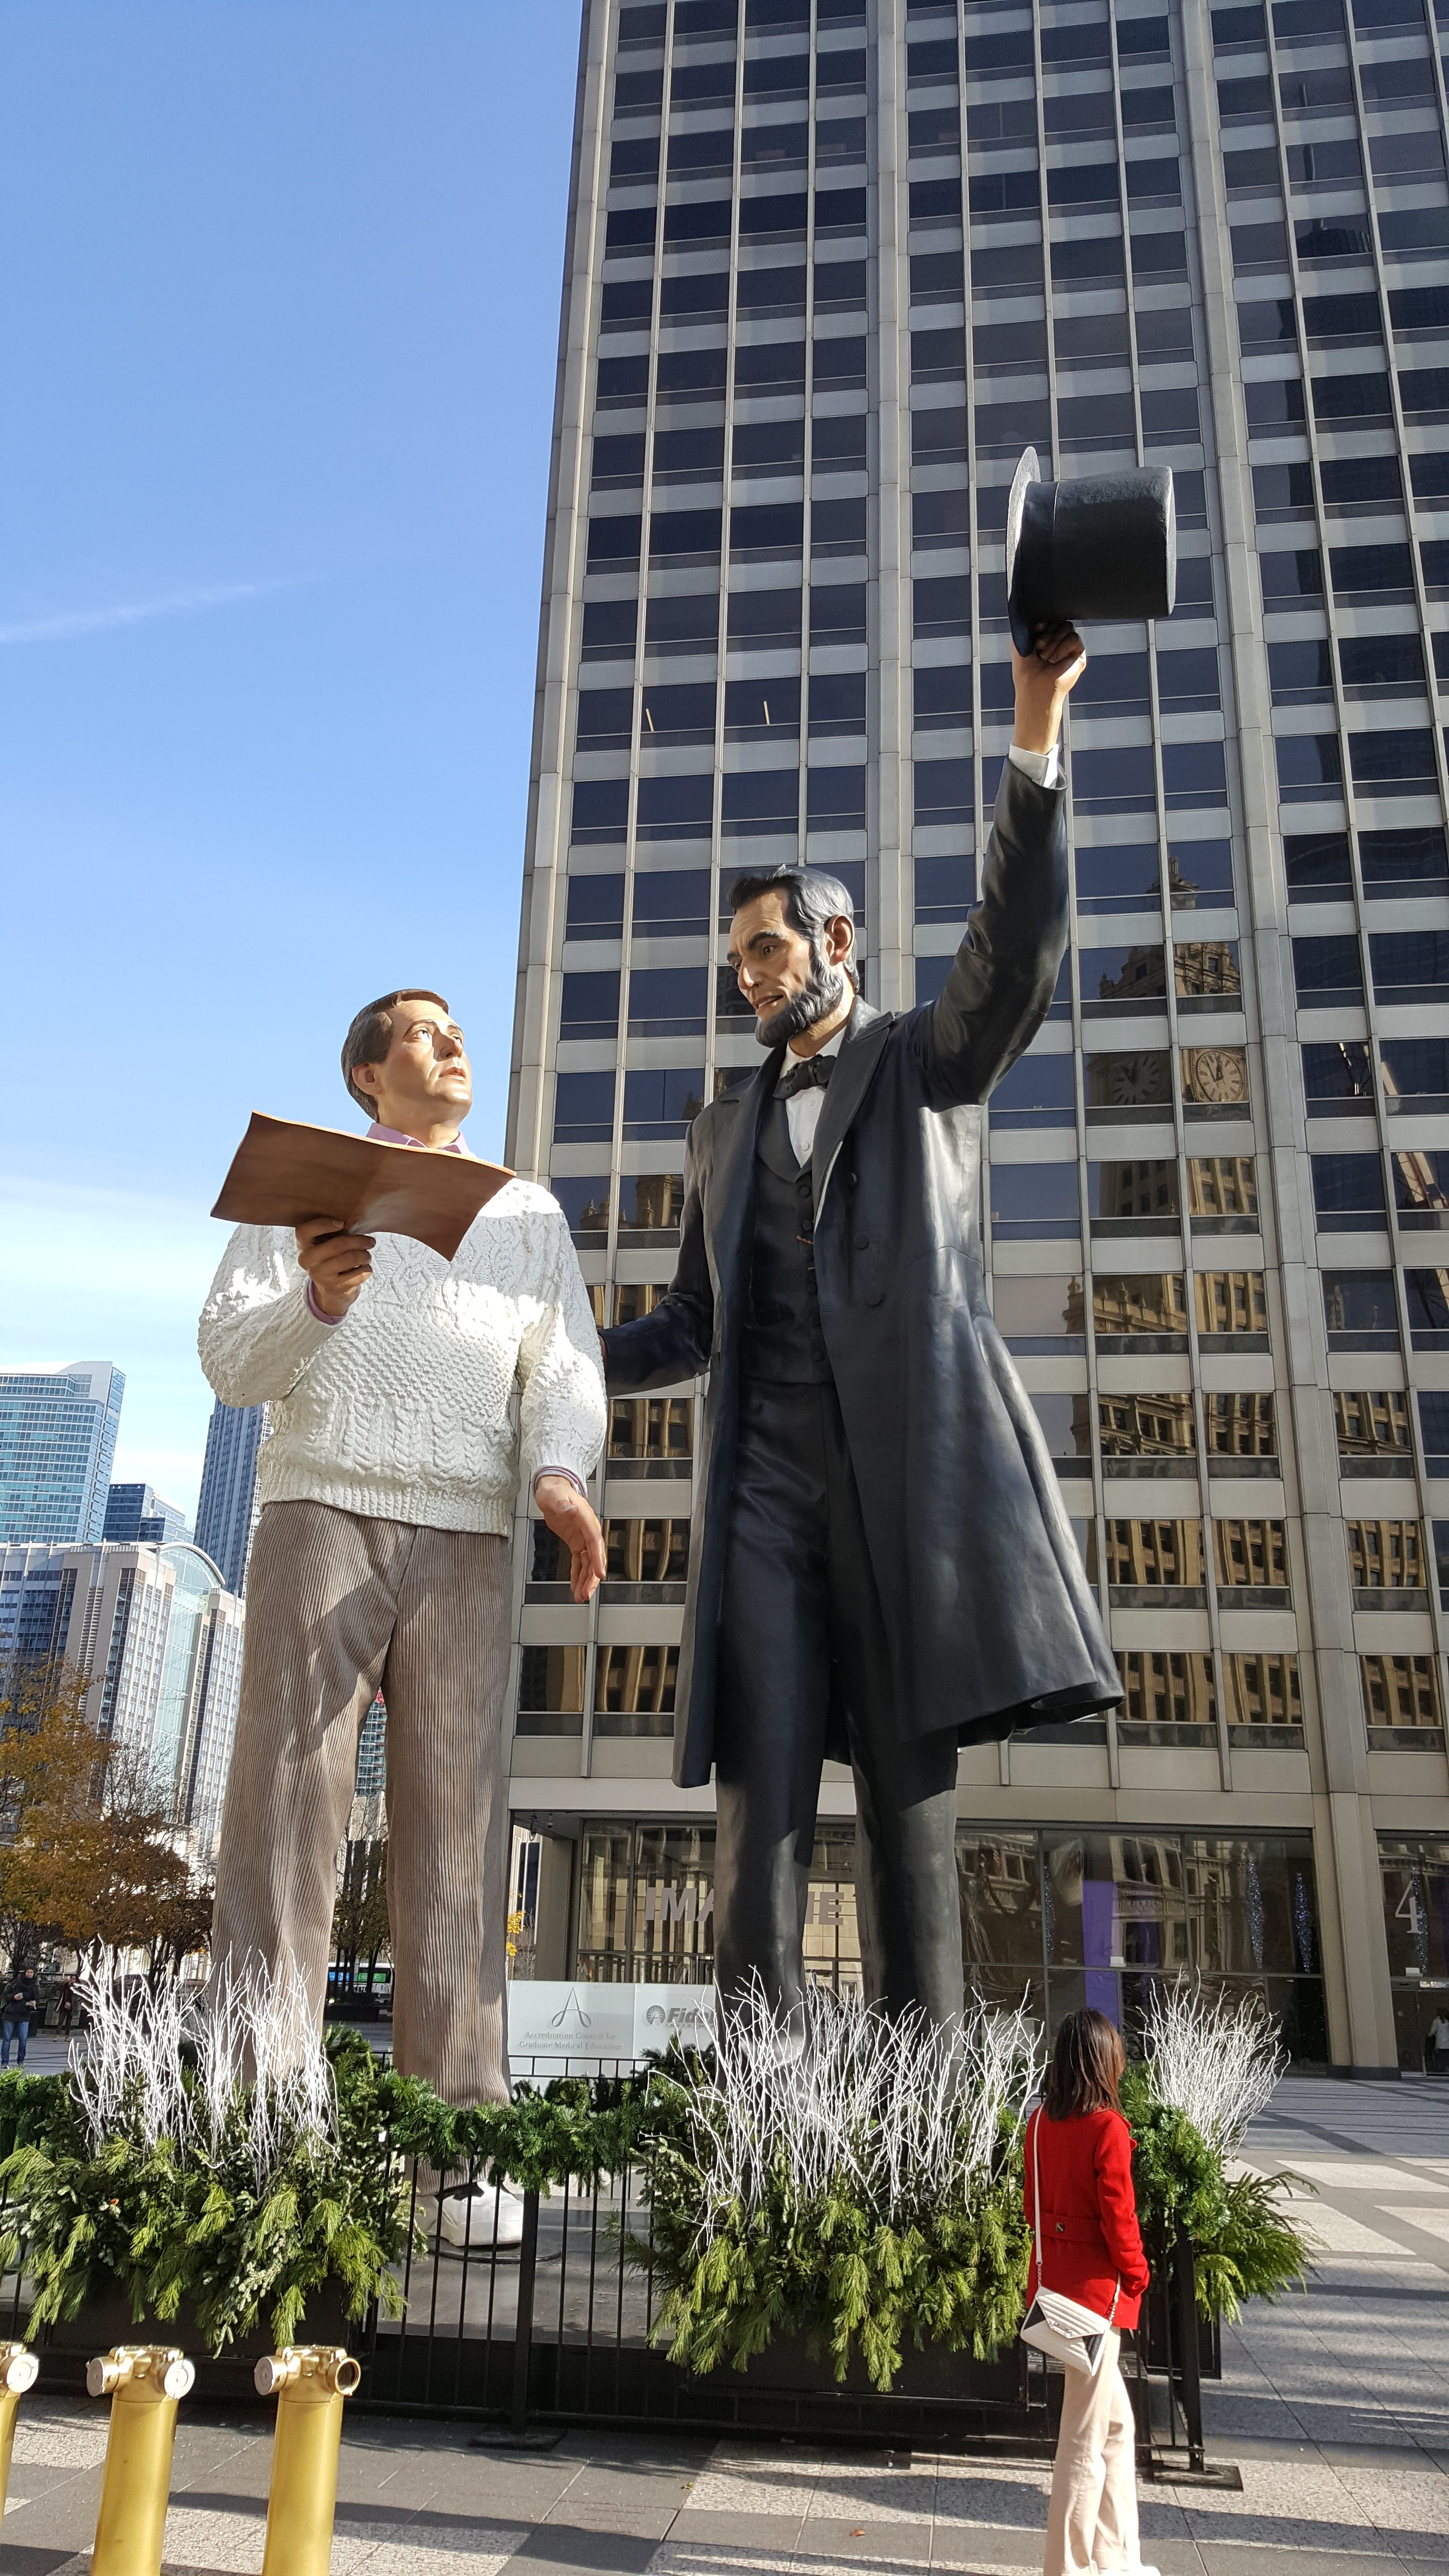 Statue of two men in front of a skyscraper